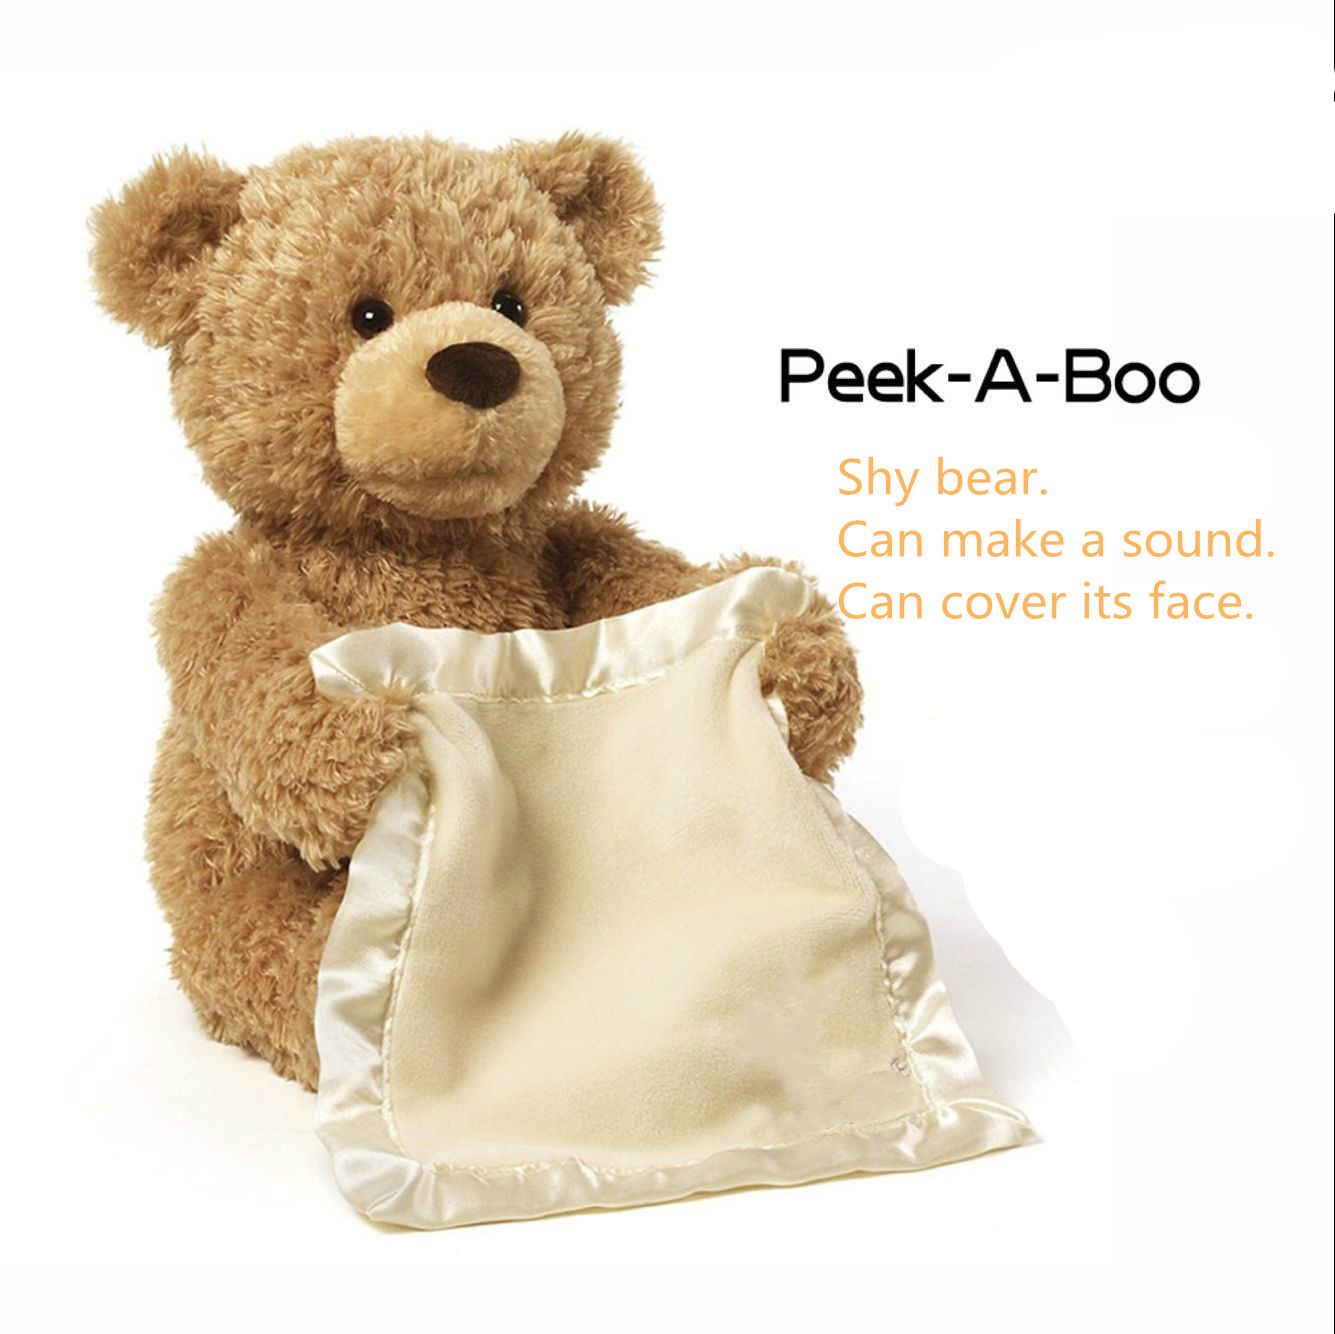 New Style Hot Selling American Peekaboo Bear Talking Will Move The Teddy Bear Electric Voice Over Face Shy Bear Plush Toy